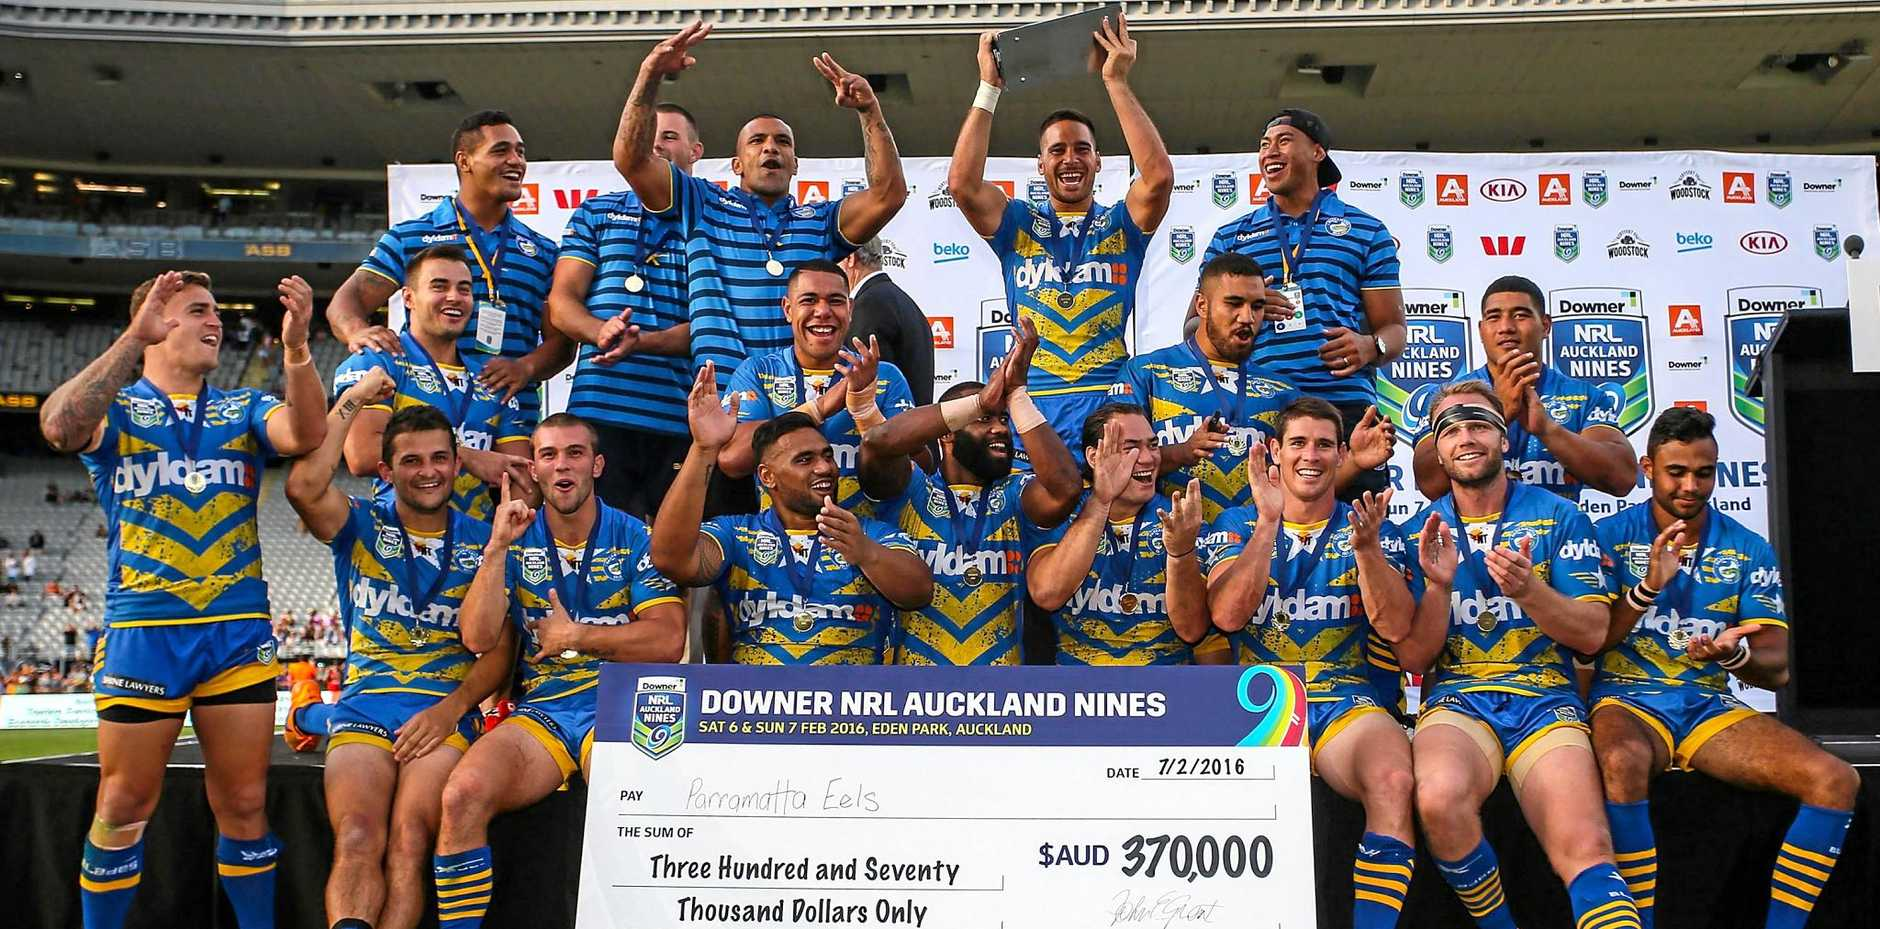 Parramatta Eels players celebrate after winning the 2016 Auckland Nines.